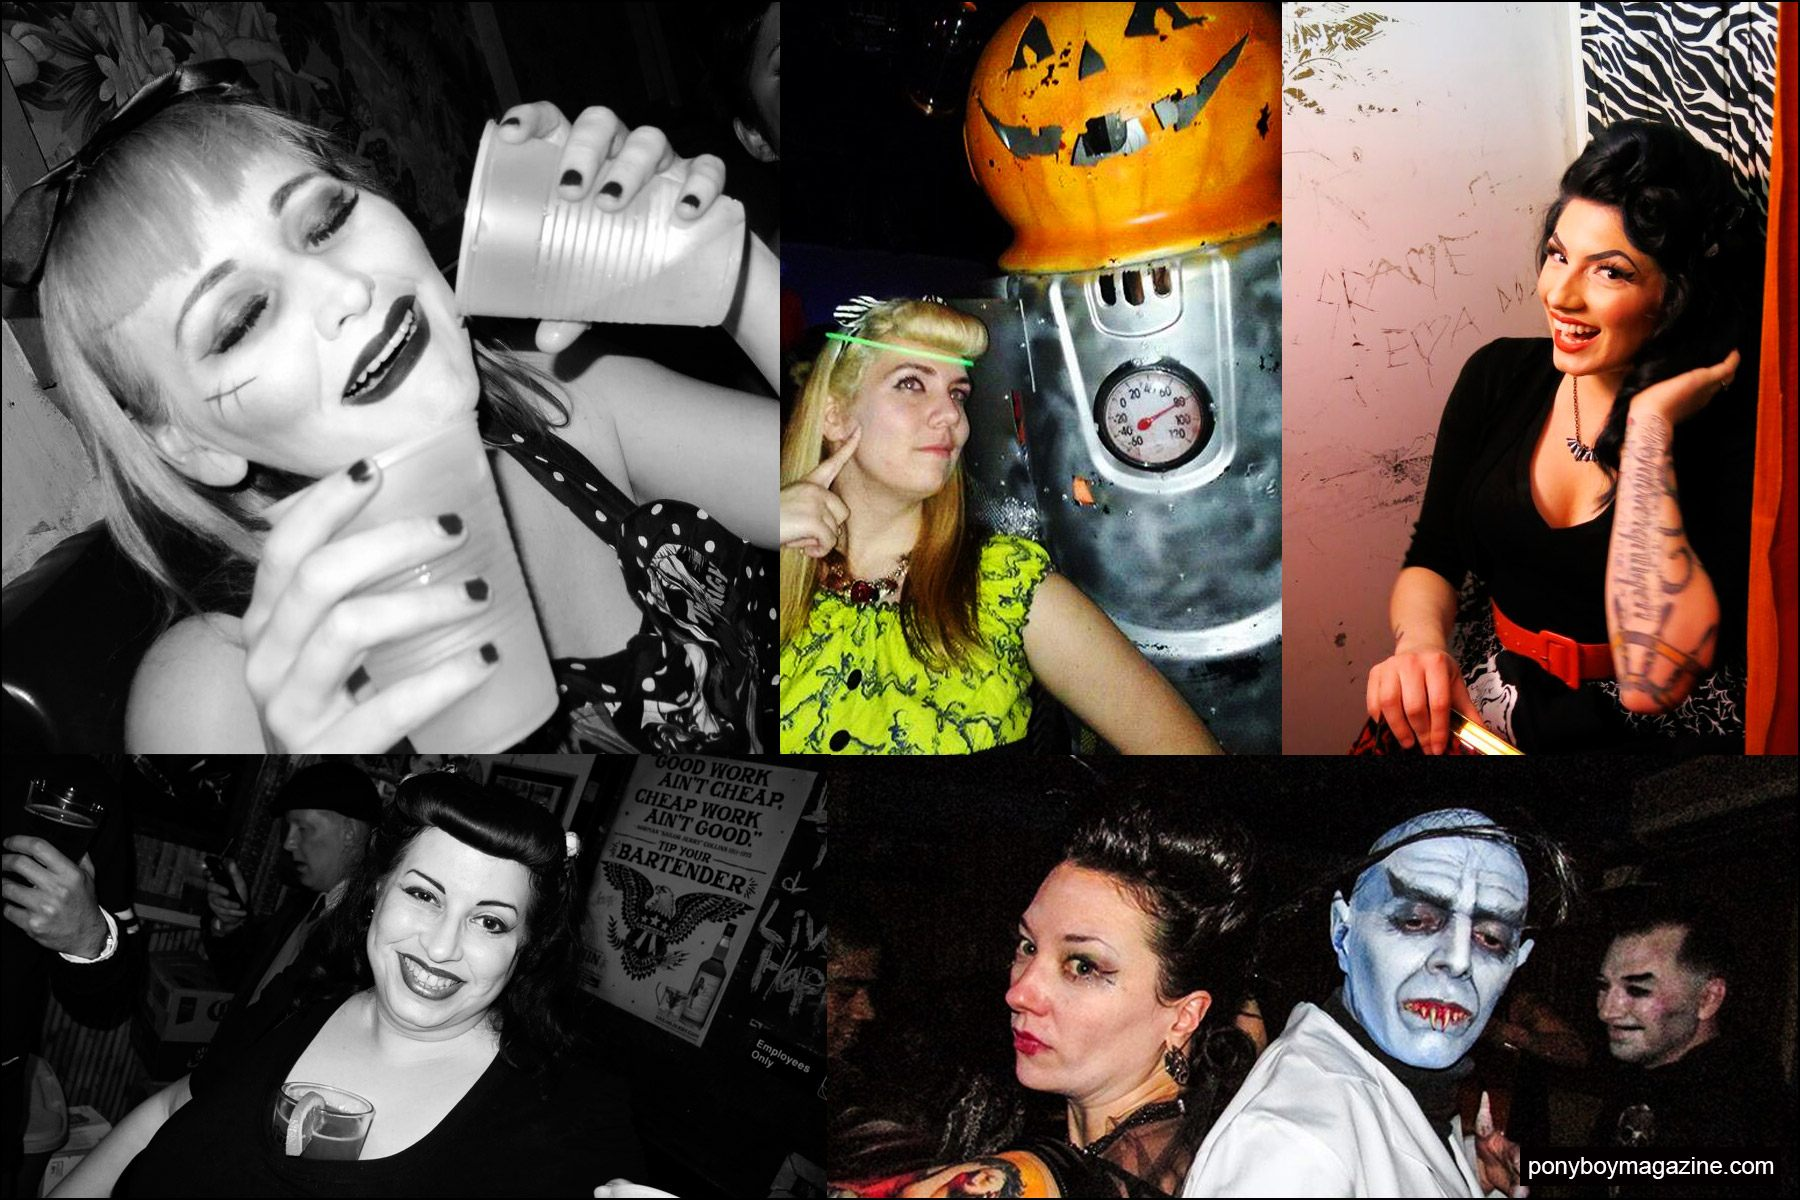 Snapshots of lovelies at the Midnite Monster Hop in New York City. Ponyboy magazine NY.